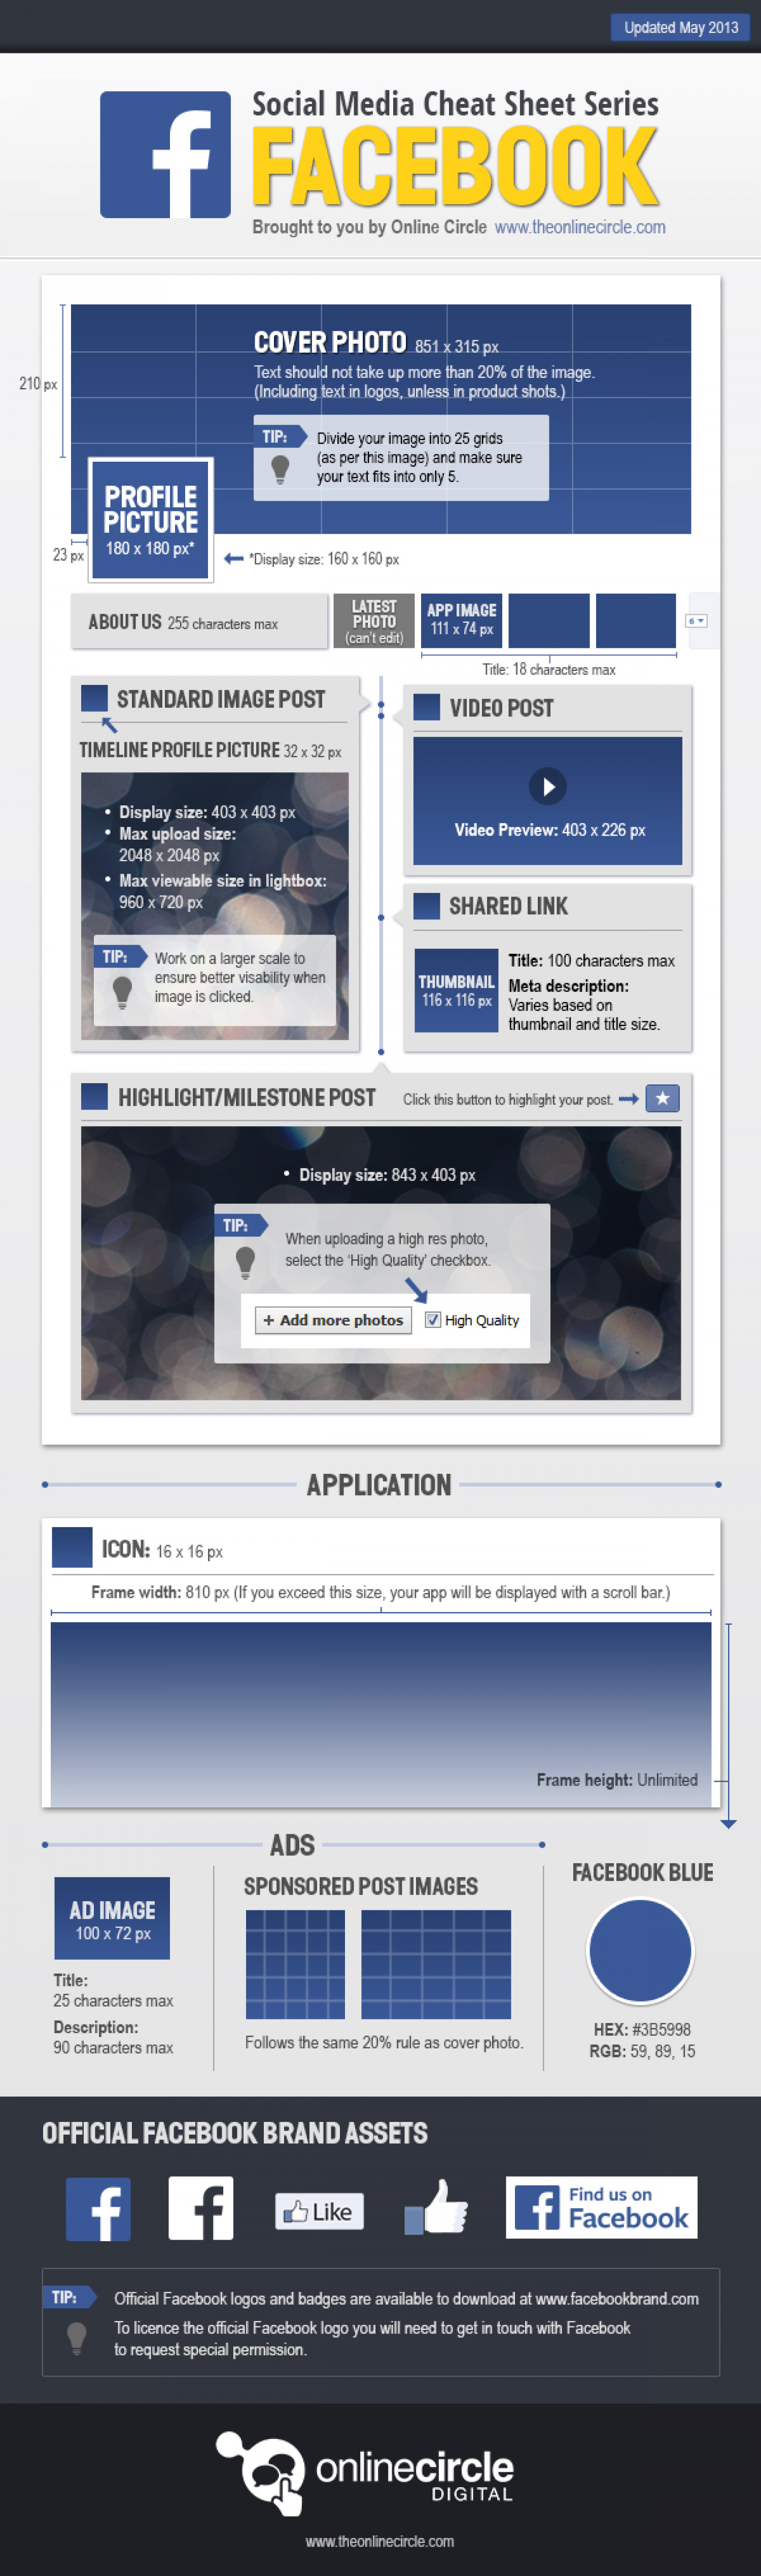 Online Circle Digital | Facebook Sizes and Dimensions Cheat Sheet 2013 Infographic